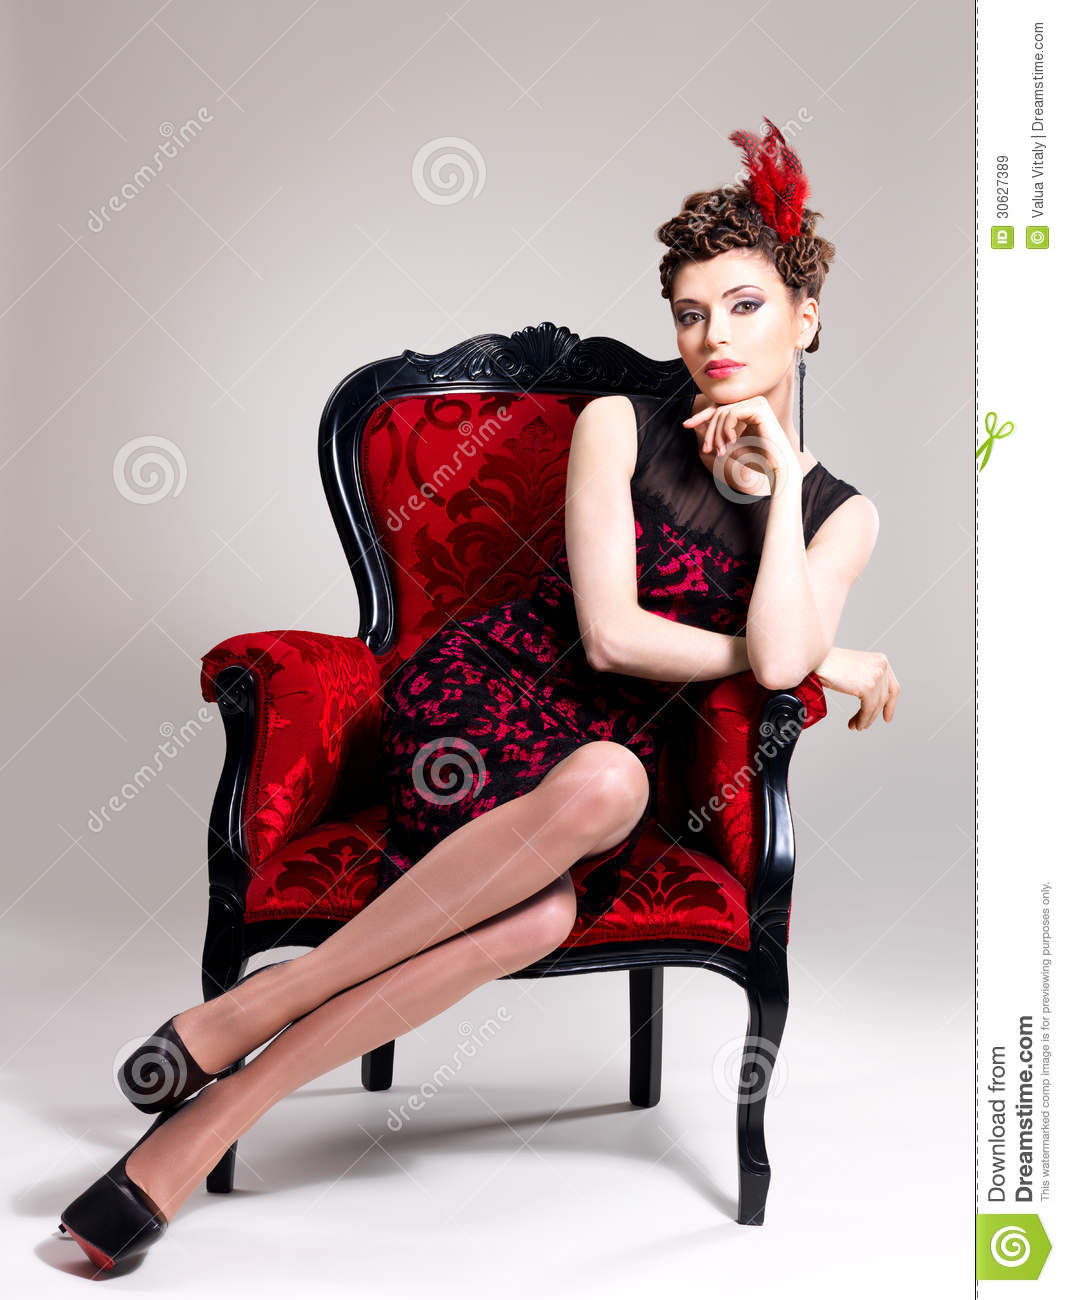 femme avec la coiffure de mode et le fauteuil rouge image stock image 30627389. Black Bedroom Furniture Sets. Home Design Ideas